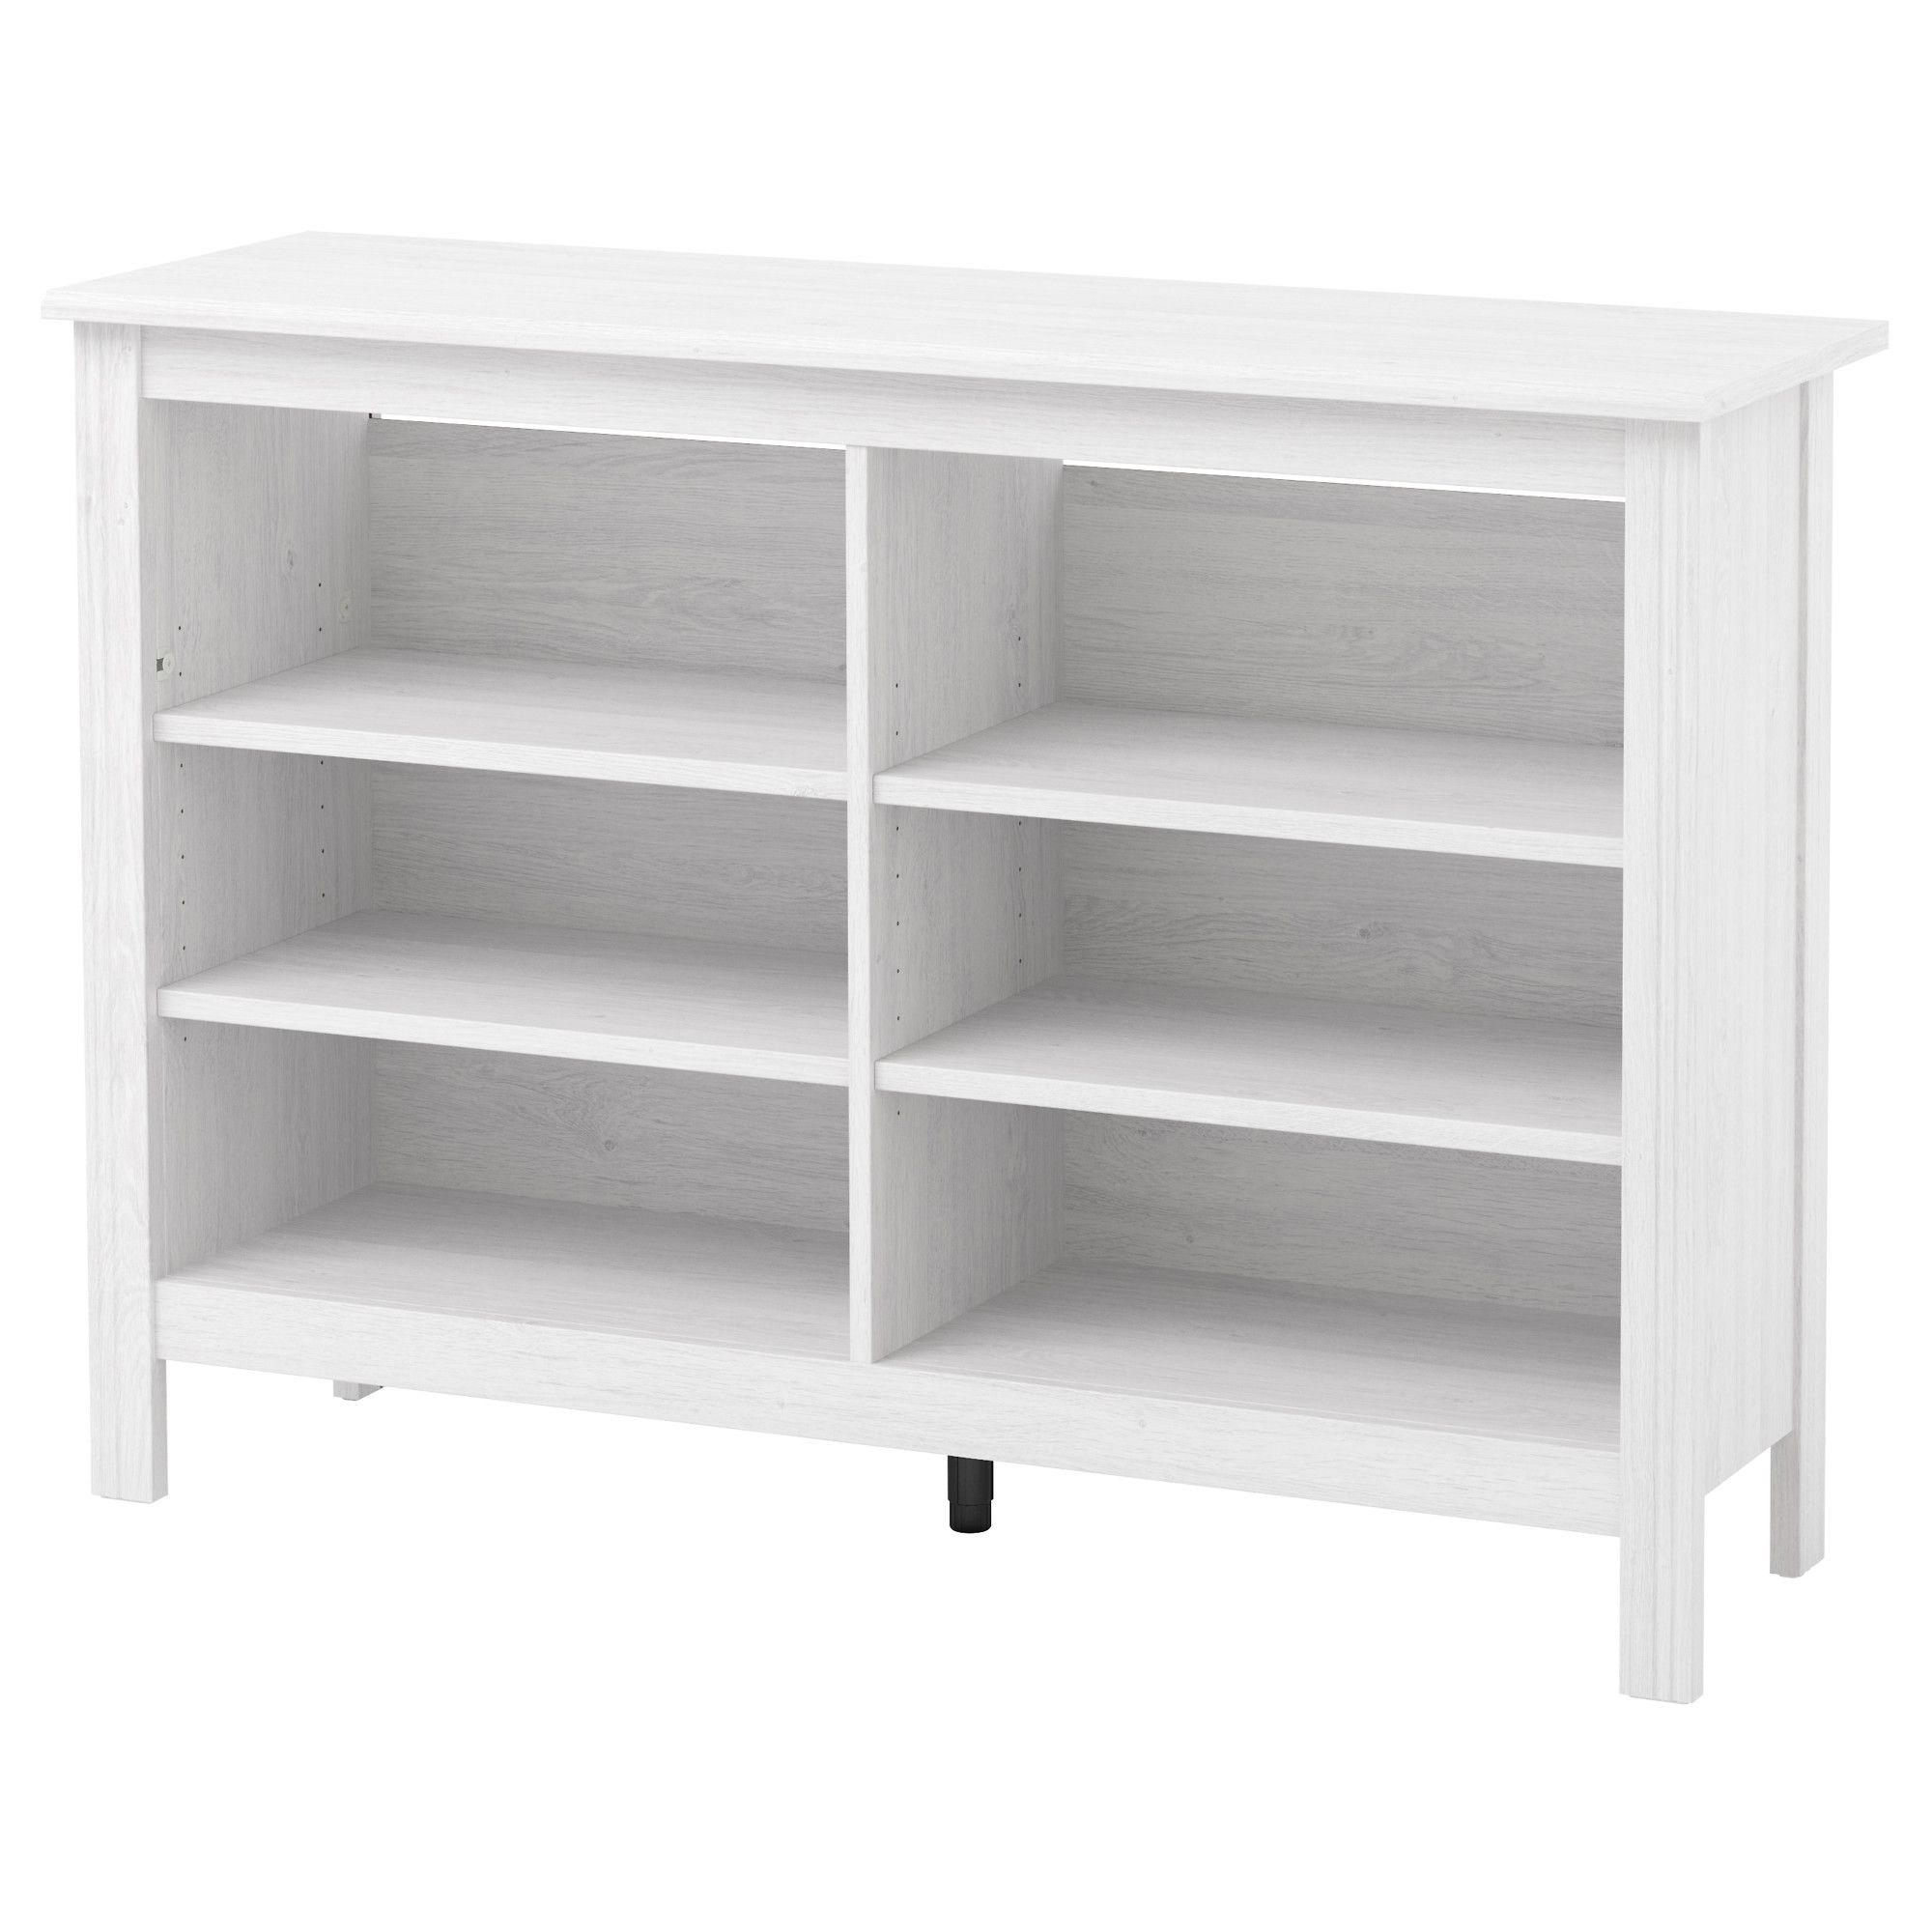 Brusali Tv Unit White Tv Unit Shelving And Tv Bench # Banc Tv Metal Noir